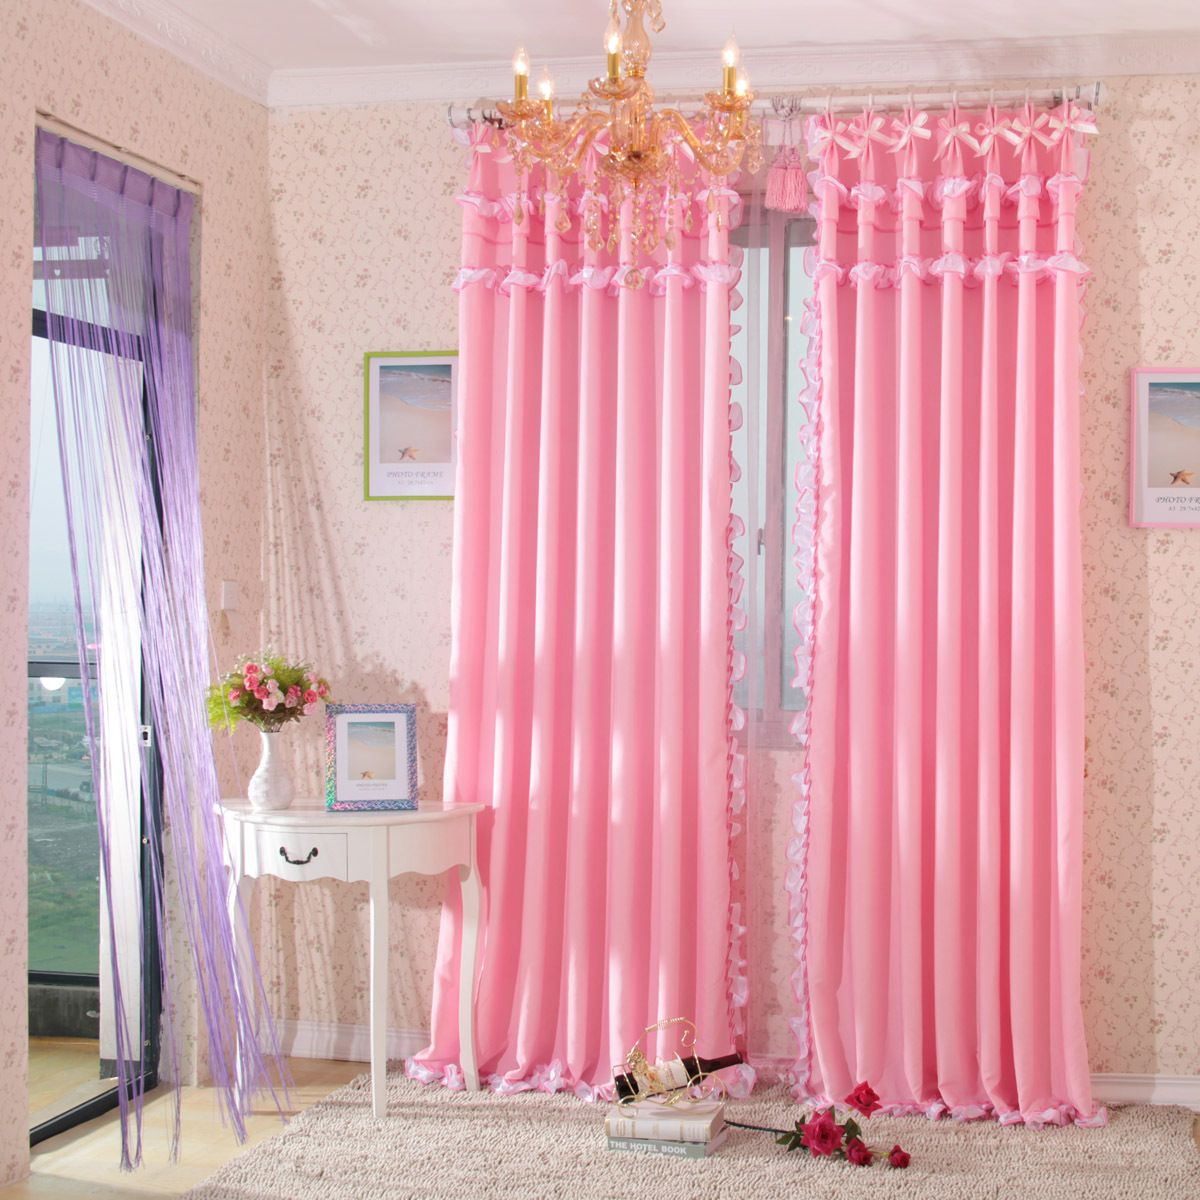 Girls Pink Bedroom Curtains Part - 19: Sweet Pink Bedroom Curtains For Girls Bedroom Accessories : Admirable Pink  Bedroom Curtain With Awesome Gold Chandelier And White Vase Table Also Grey  Shag ...